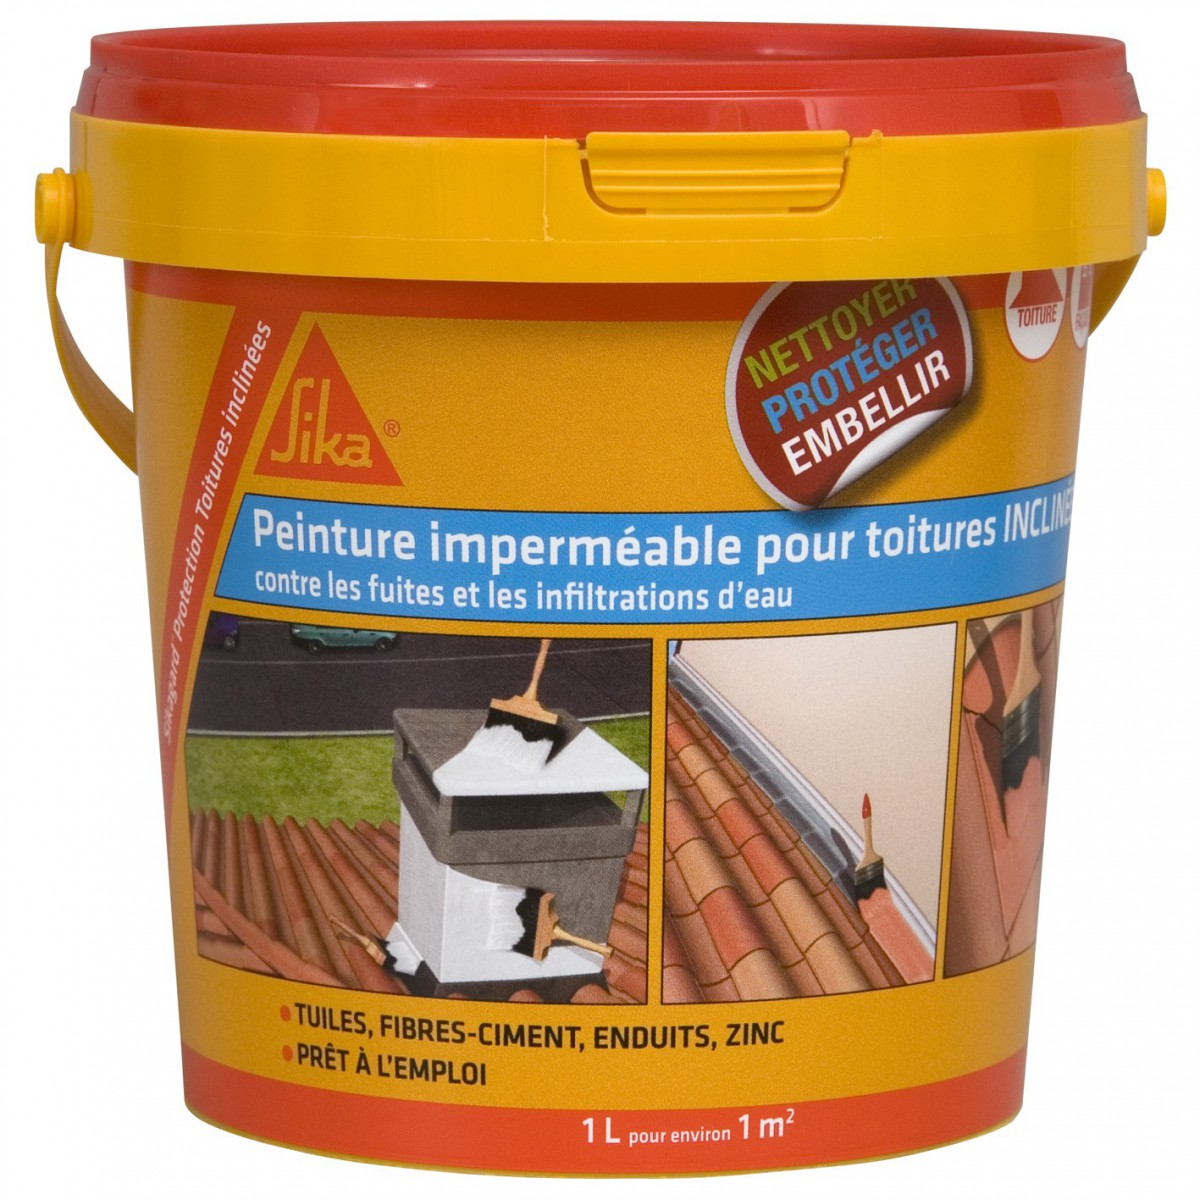 SIKA - Sikagard Protection Toiture inclinée 1L à 22,90